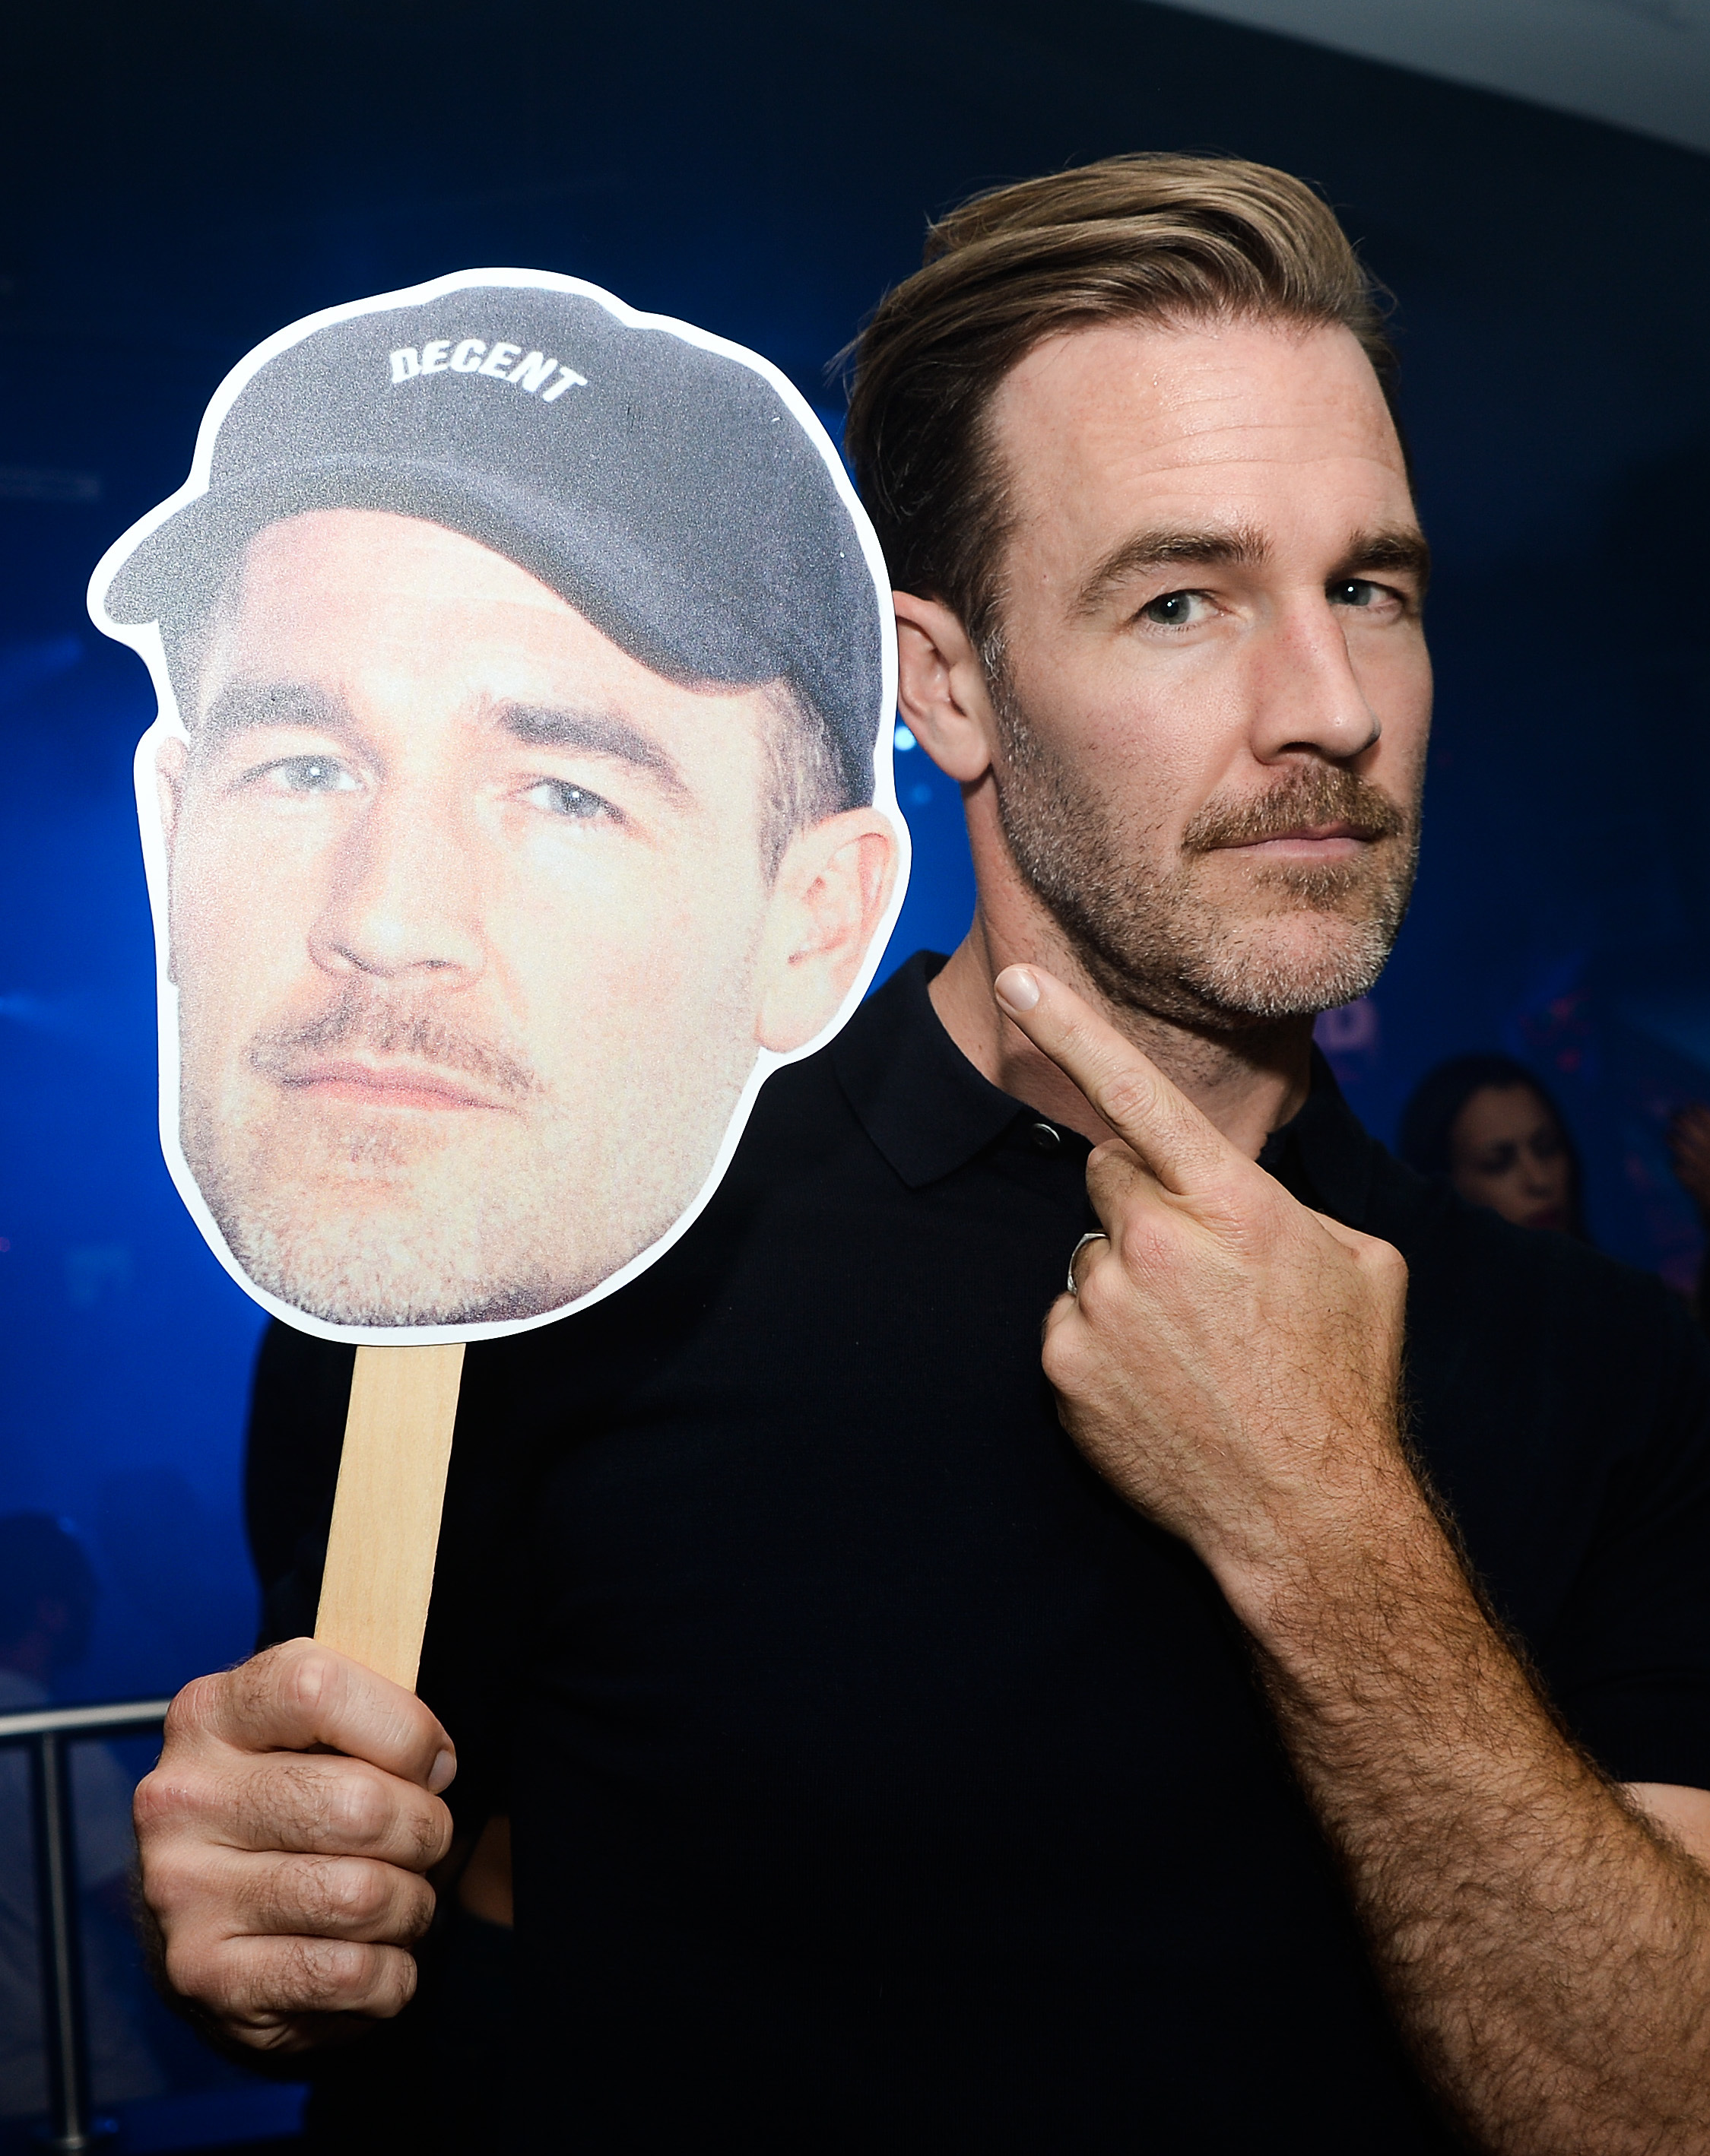 """James Van Der Beek attends Viceland's """"What Would Diplo Do?"""" party at Comic Con in San Diego, Calif., on July 21, 2017."""